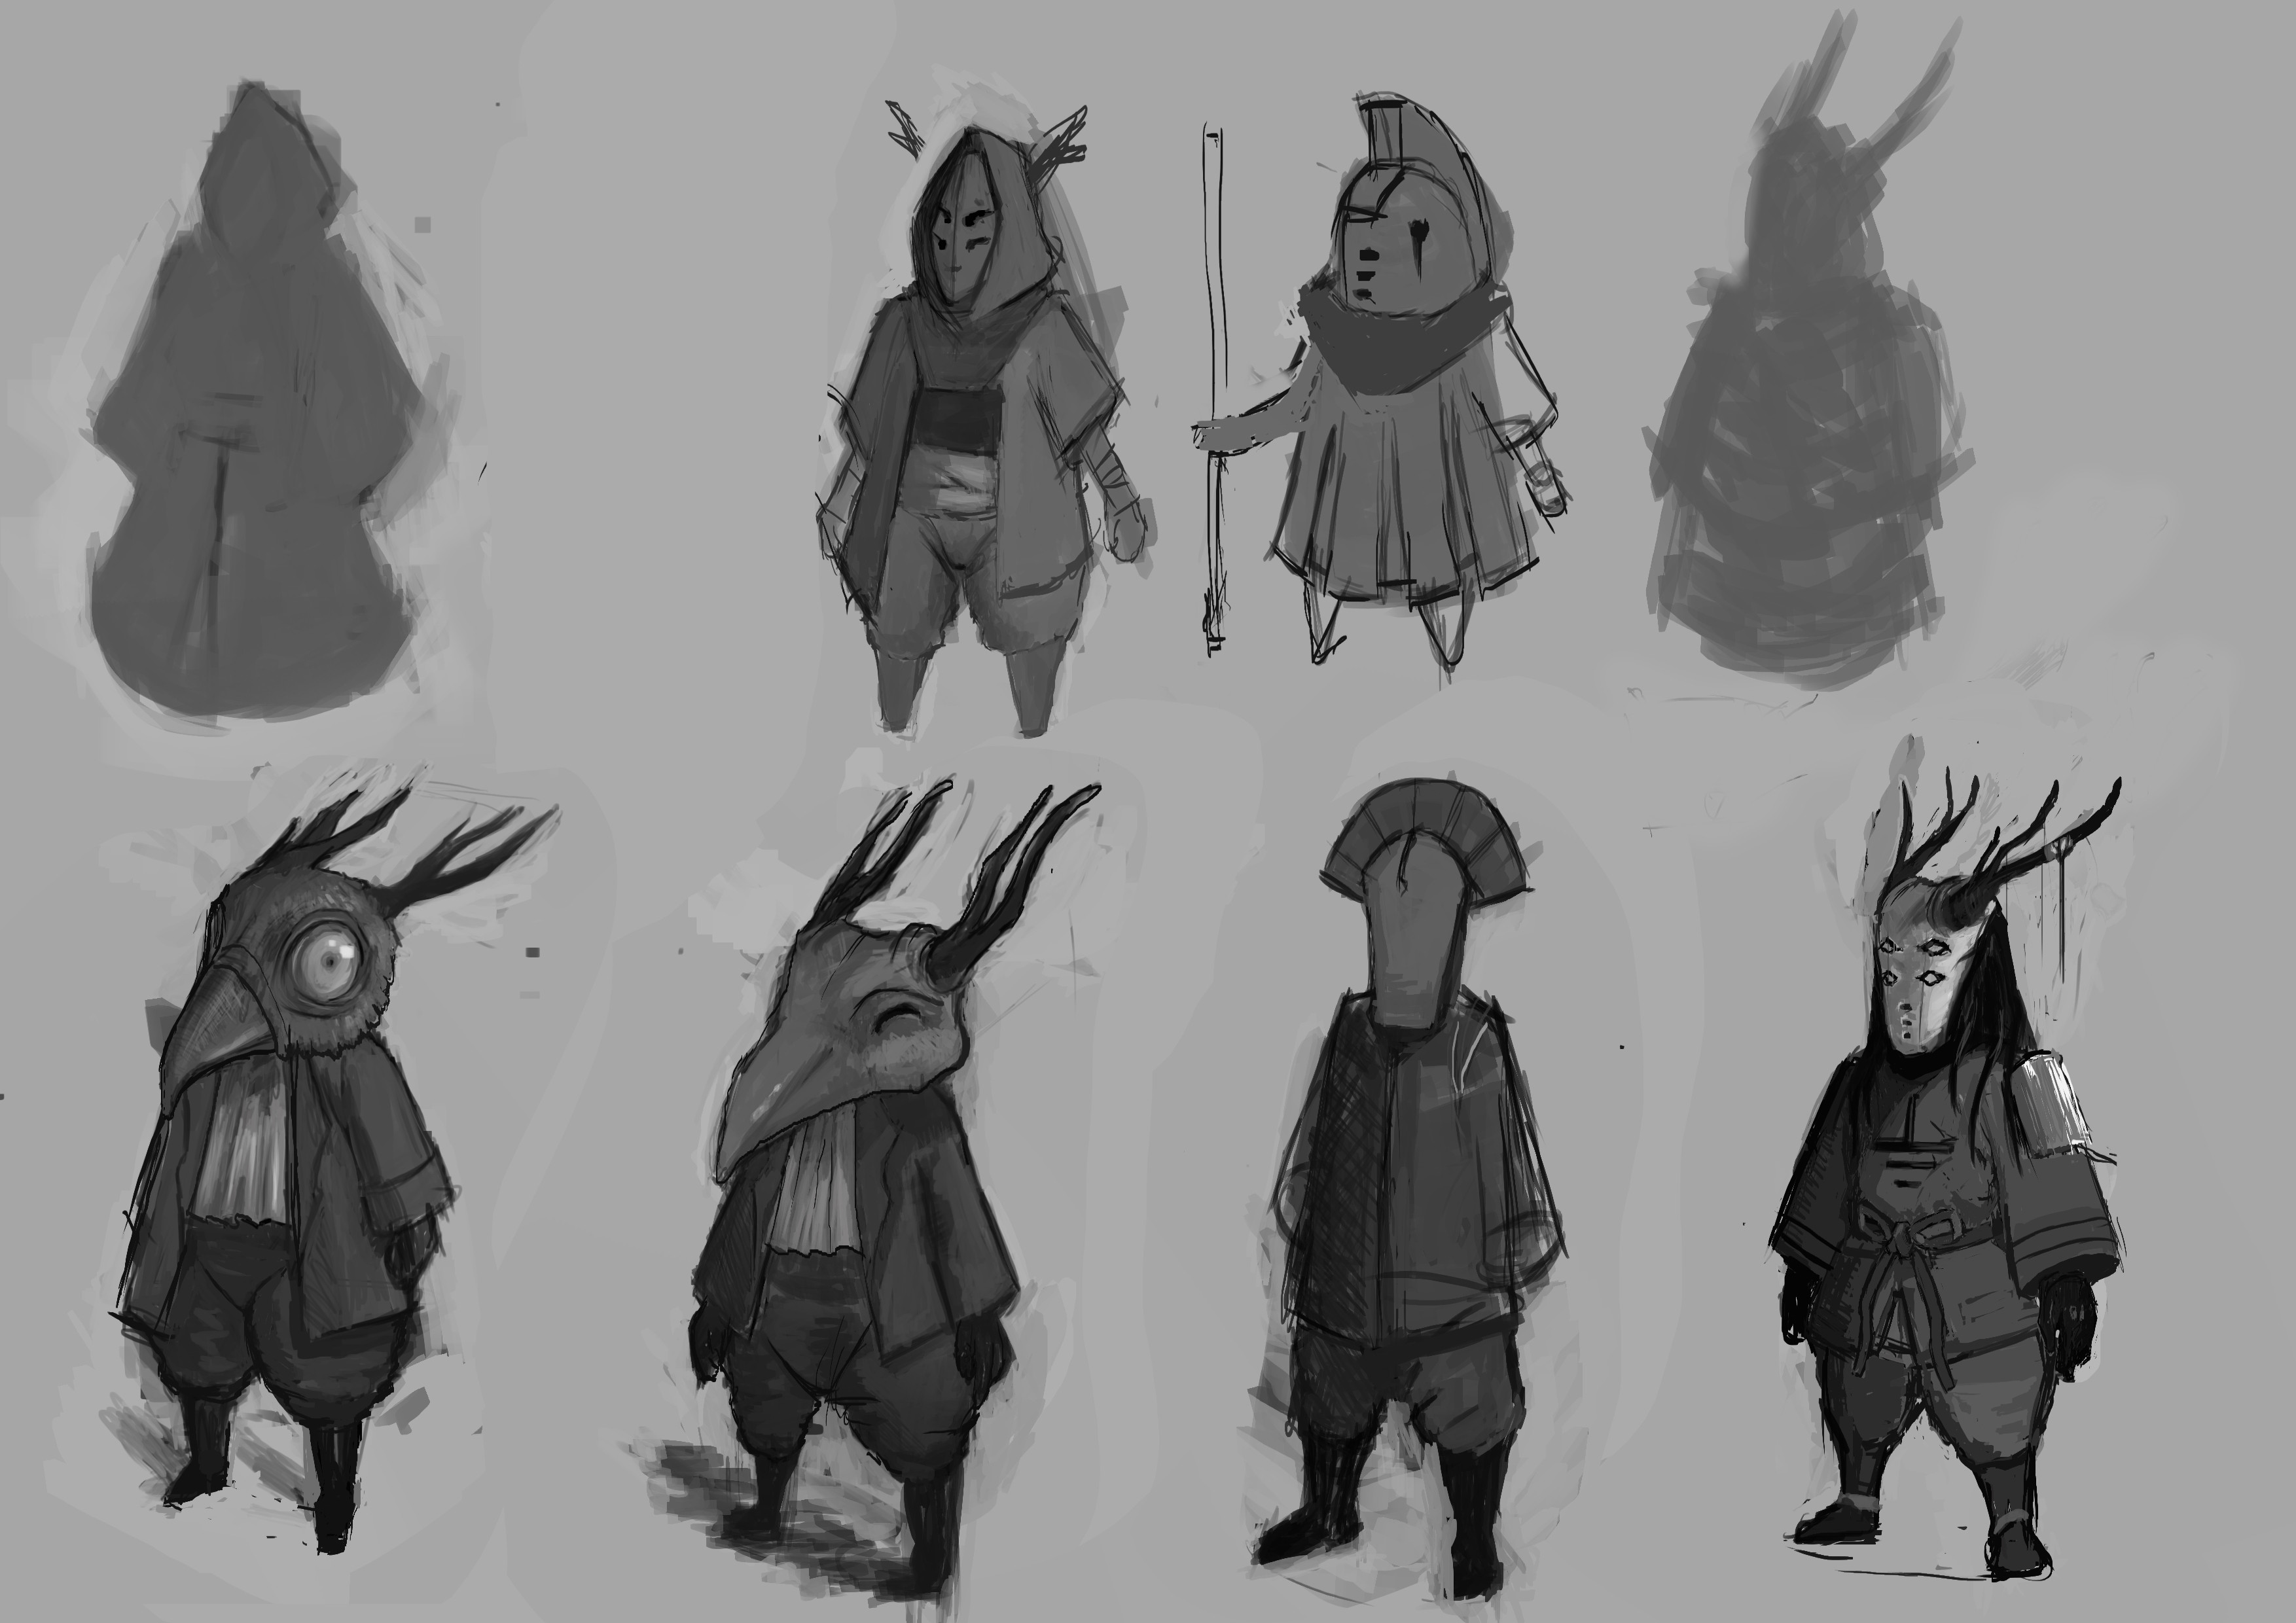 More refined sketches of the design